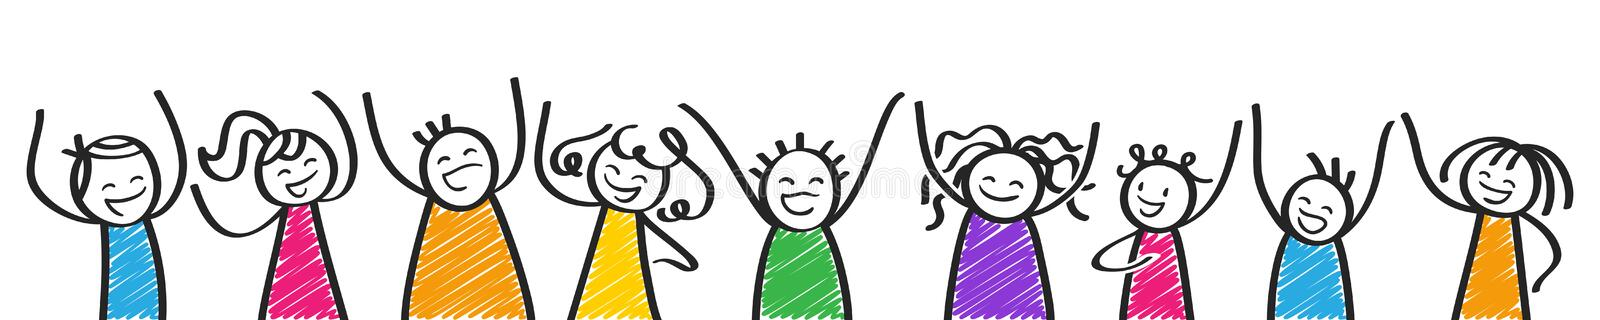 Row of cheering colorful stick people, banner, happy kids, men and women, black and white stick figures vector illustration